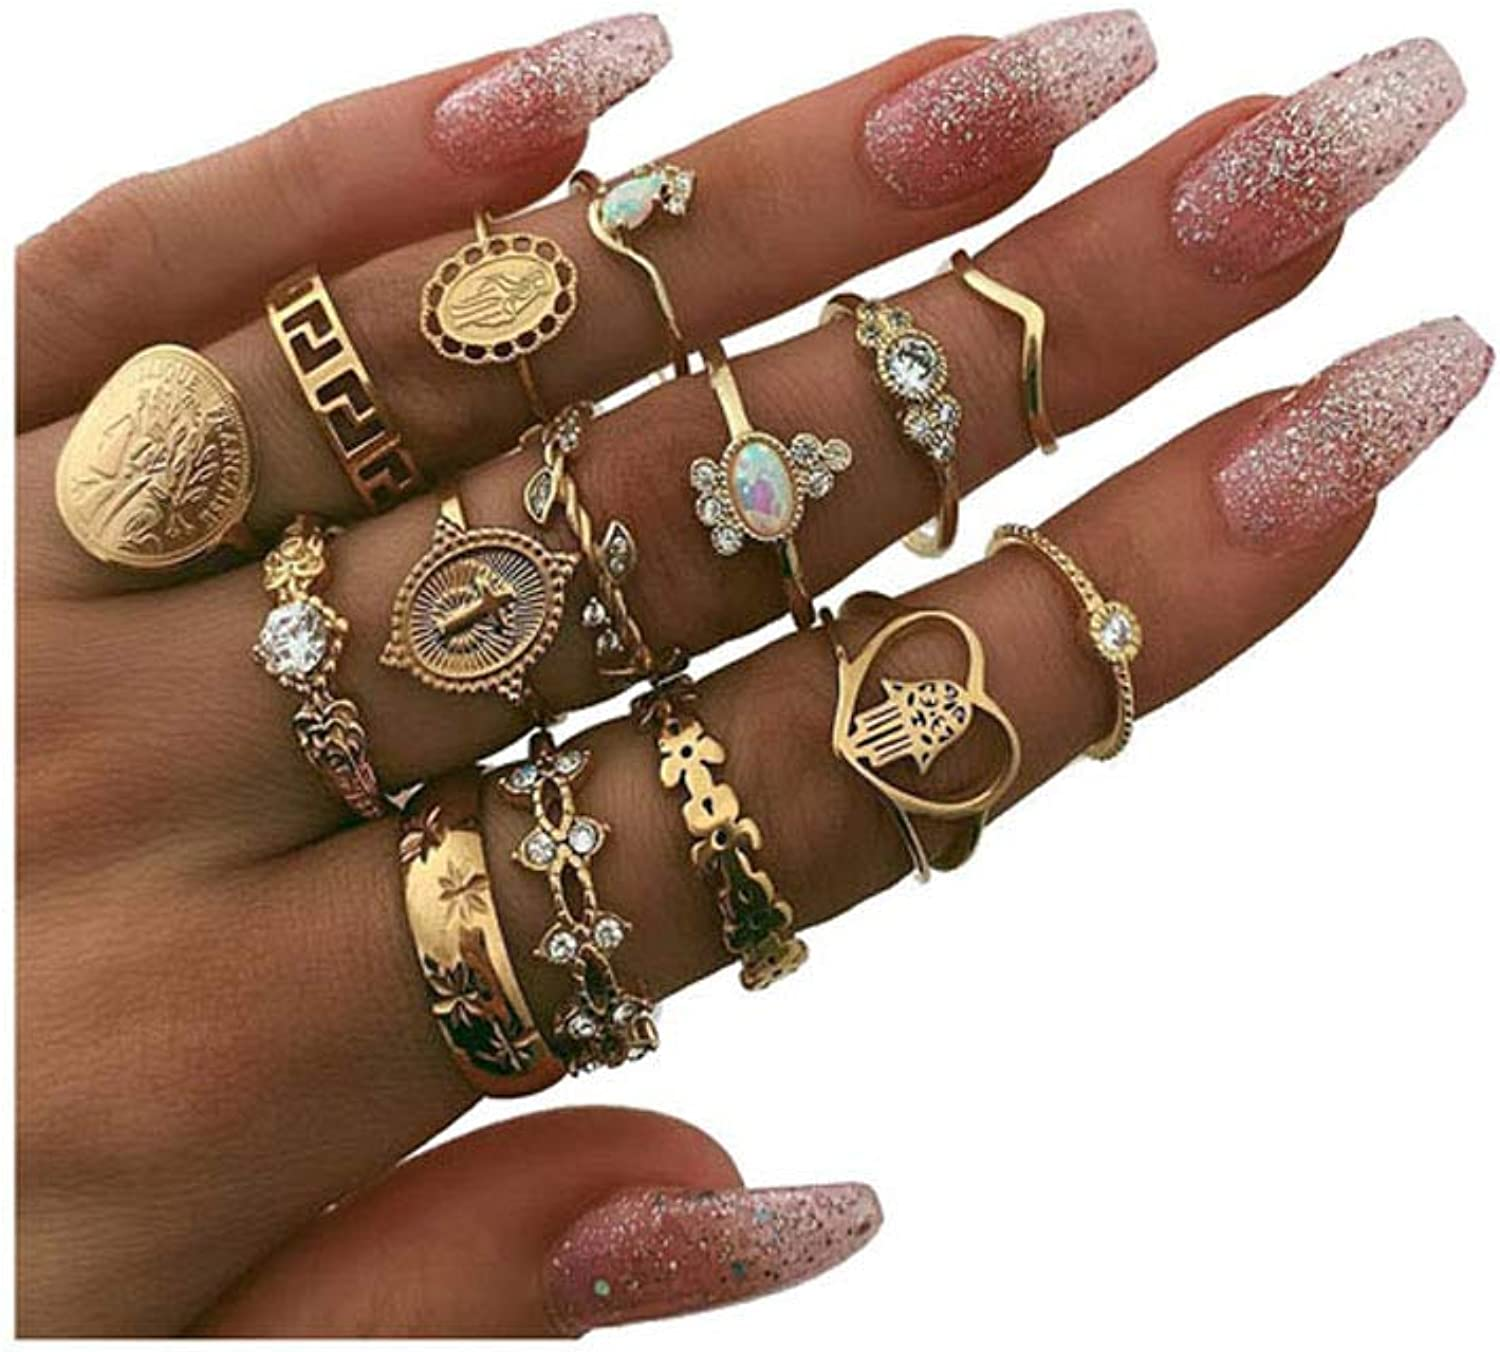 10-15PCS Bohemian Crystal Joint Midi Knuckle Stacking Rings, Retro Gem Finger Rings Sets Comfort Fit Size 5 to 9